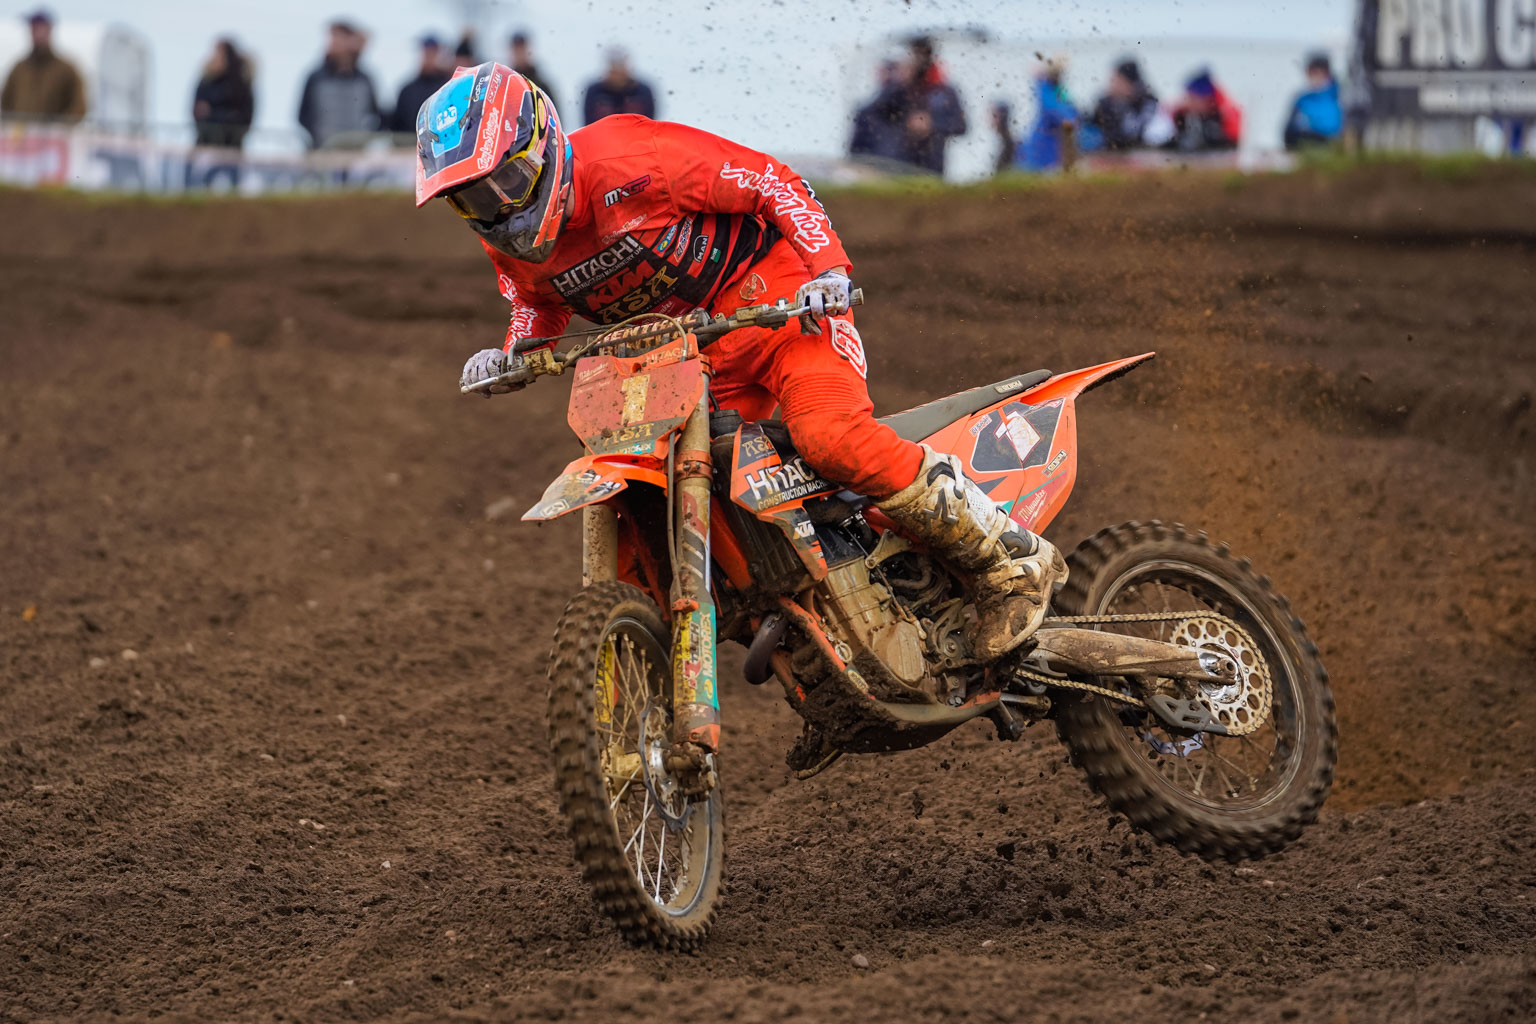 Champion Graeme Irwin gets an almighty kick coming out of a Culham bend. He stayed on and took the overall